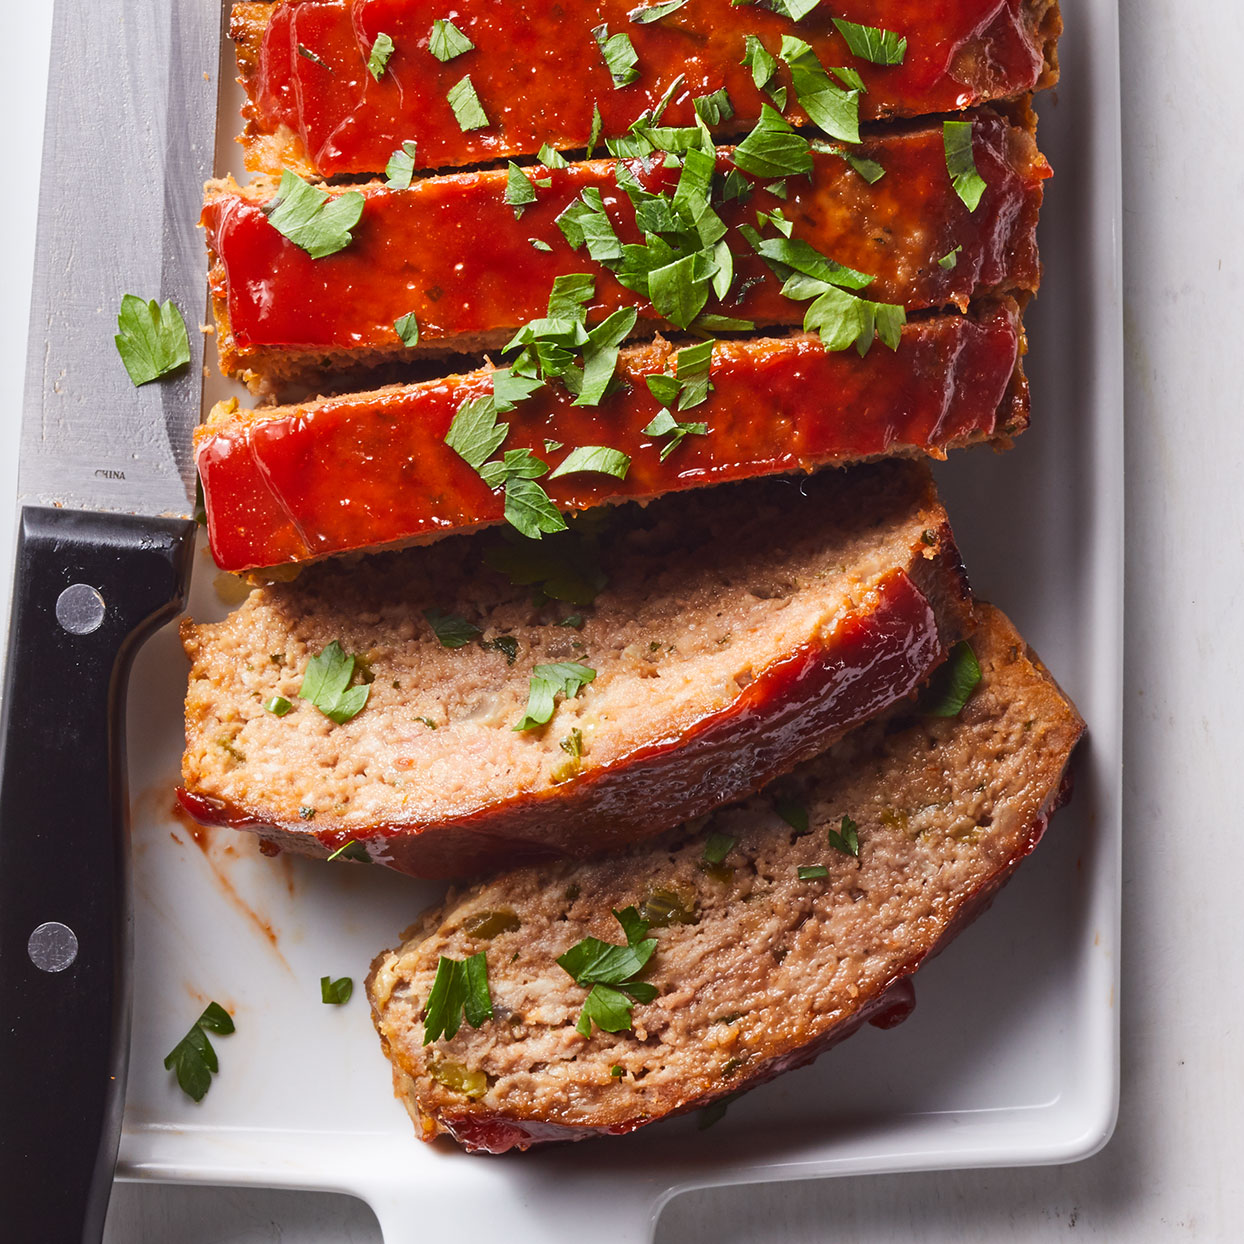 This Italian meatloaf riff uses sausage to boost its flavor. When you're already cooking meatloaf, it's not much more effort to prep a second meatloaf. The extra one makes a delicious day-after meal (see Tip for ideas for the leftovers) or freeze it for another time. Source: EatingWell Magazine, December 2019